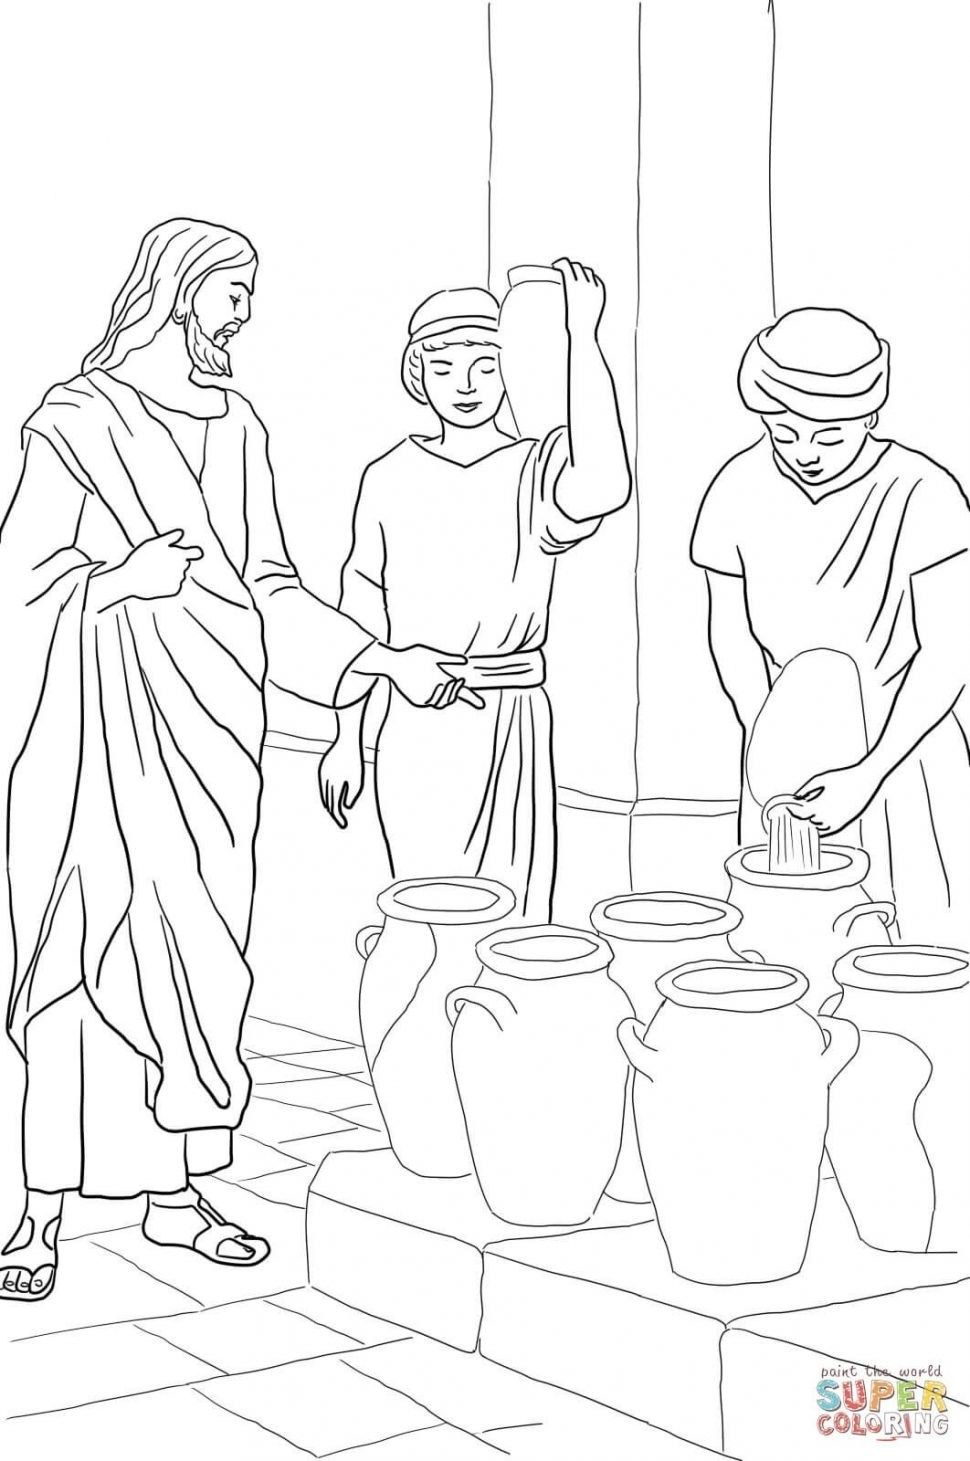 17+ Turn picture to coloring page free free download